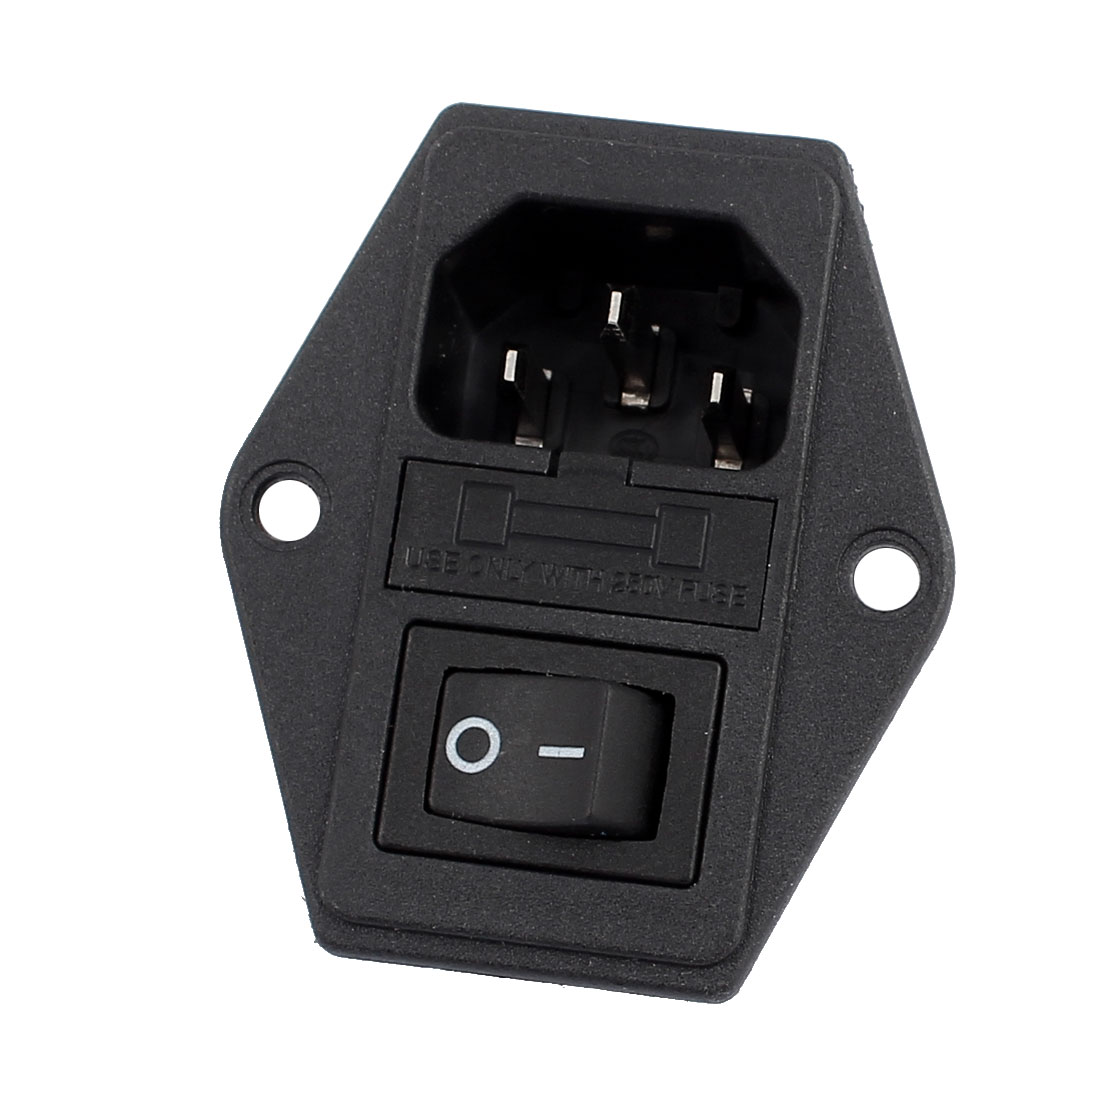 AC 250V 10A 3 Terminals Rocker Switch C14 Inlet Male Power Plug